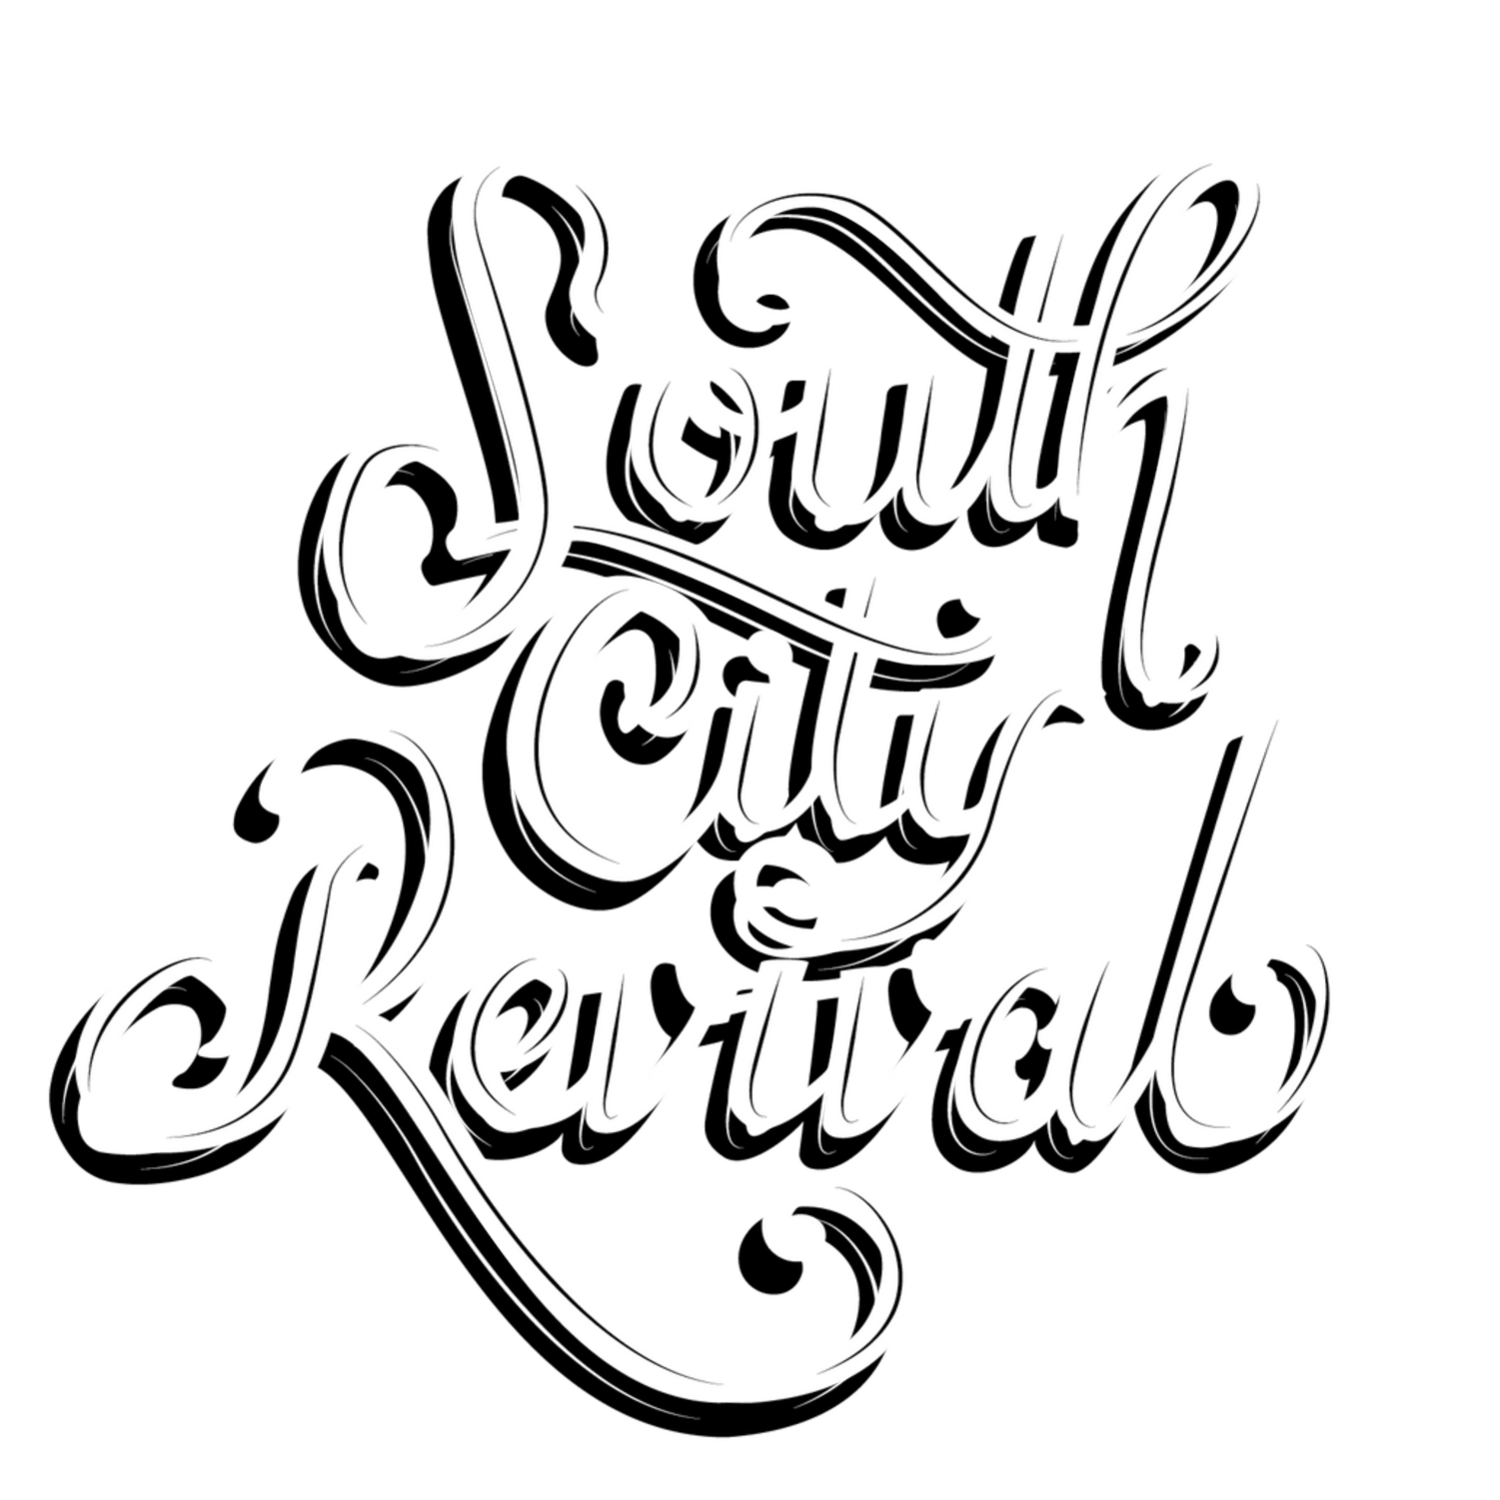 South City Revival